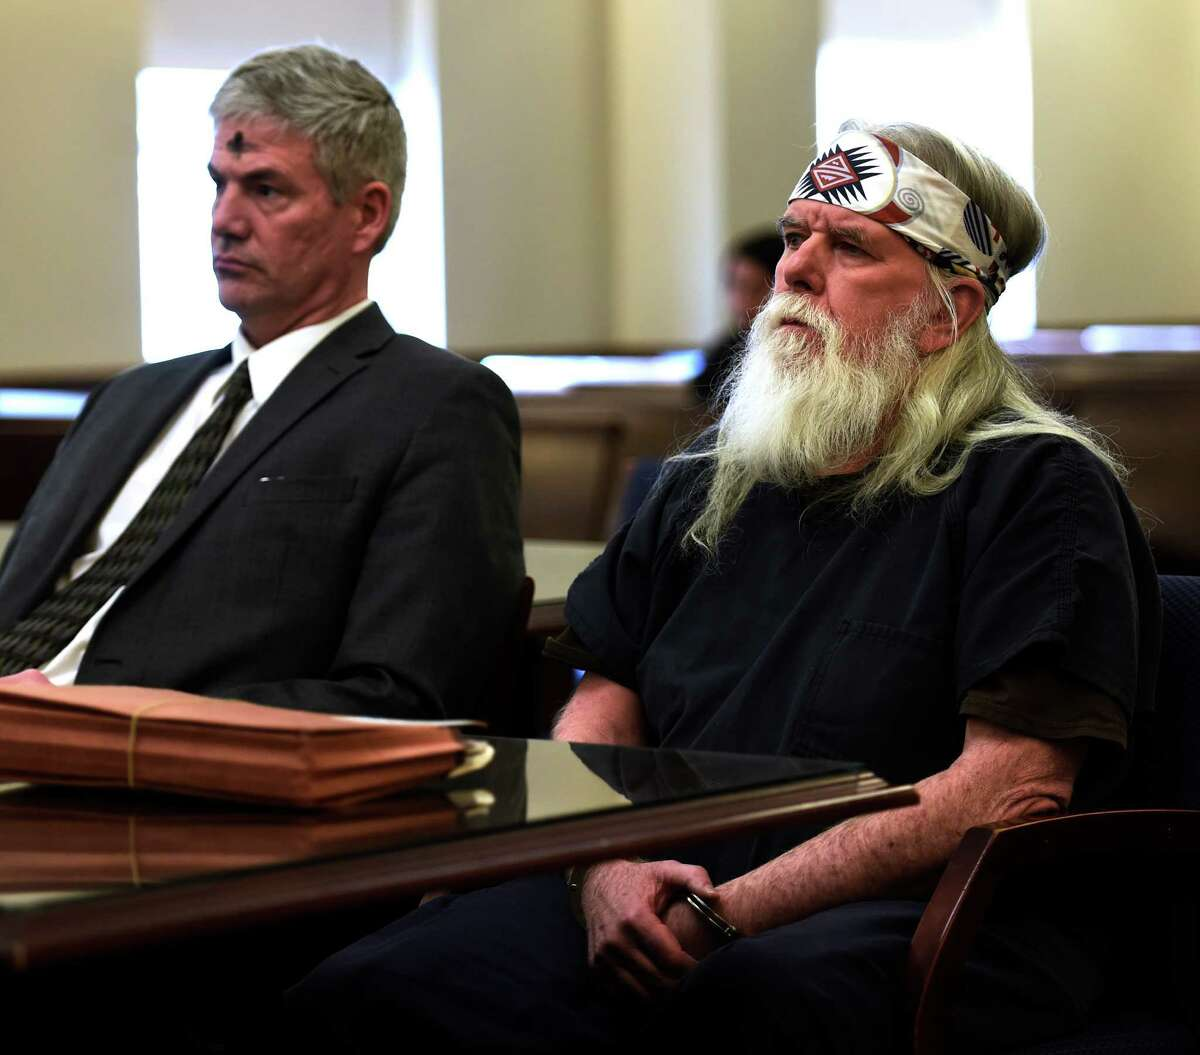 Defendant Joseph J. O'Hara, right, appears Tuesday afternoon with his attorney Paul Edwards in the courtroom of Judge Stephen W. Herrick at the Albany Judicial Center on Feb. 10, 2016, in Albany, N.Y. (Skip Dickstein/Times Union)